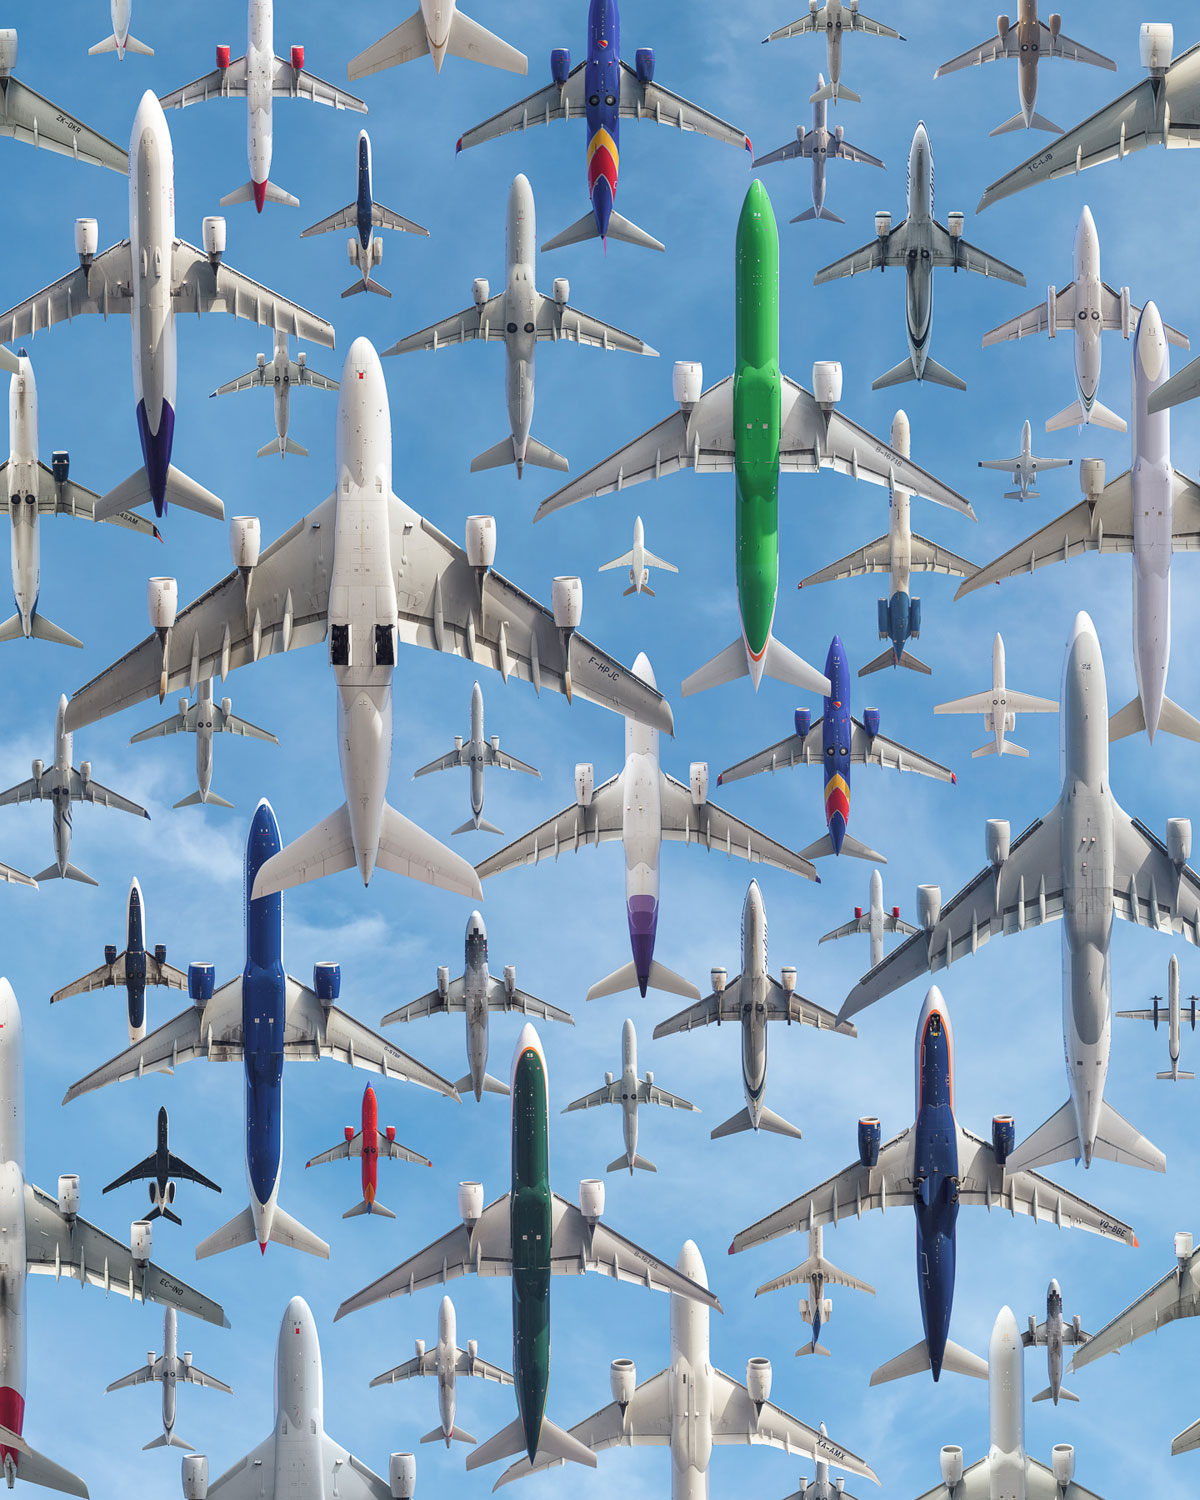 los angeles international 24l no turn before shoreline These Composites of Planes Taking Off and Landing Show How Connected the World Is